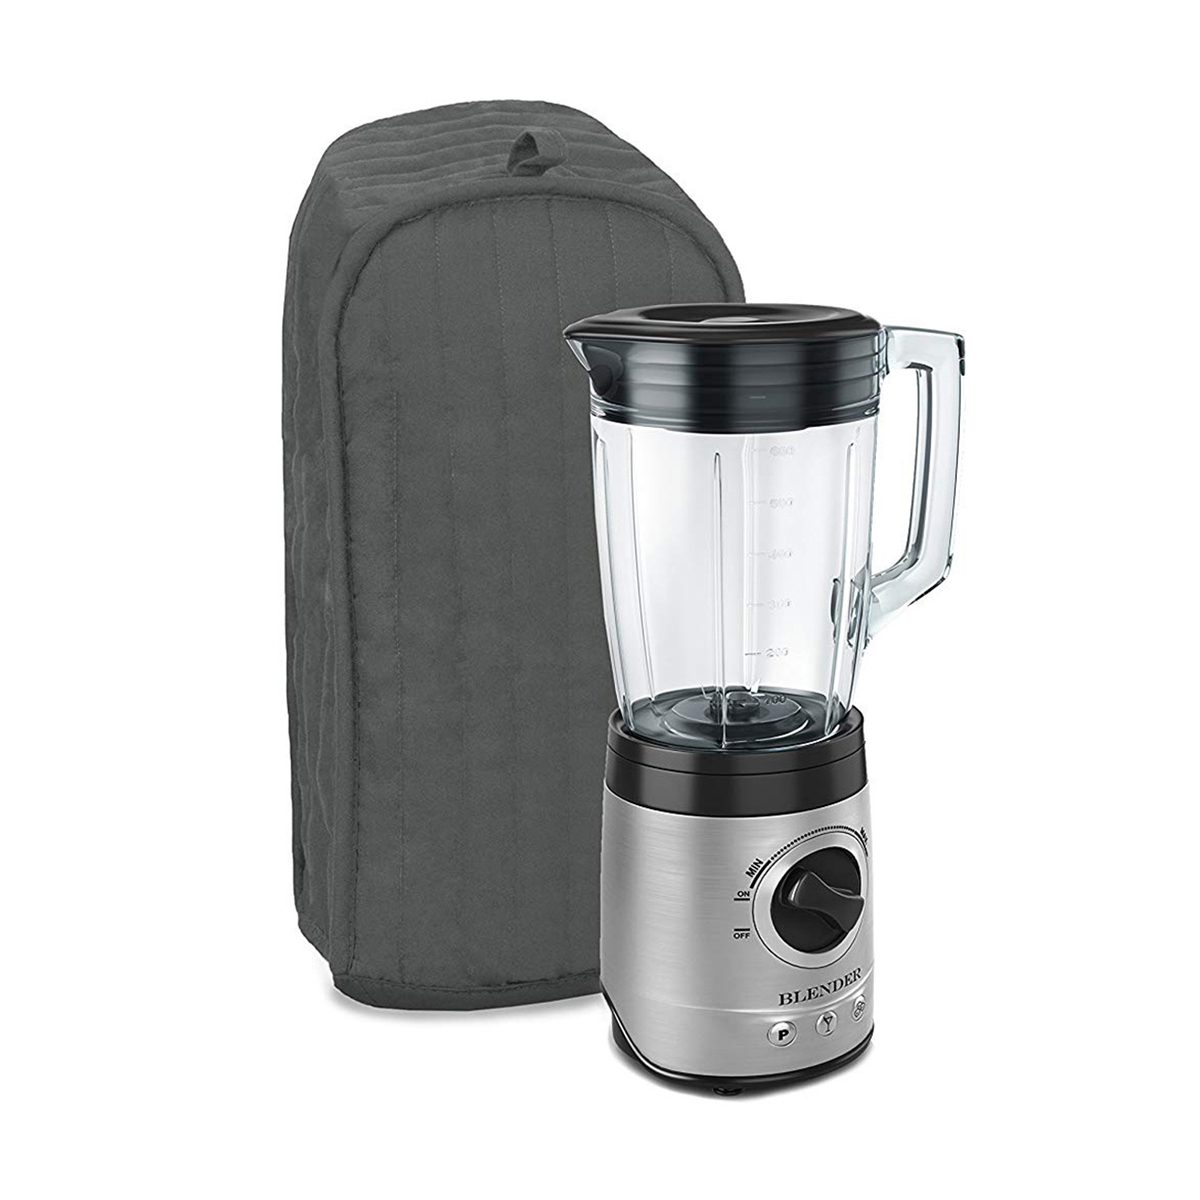 Quilted Polyester Kitchen Blender Appliance Cover Dust-proof Protection